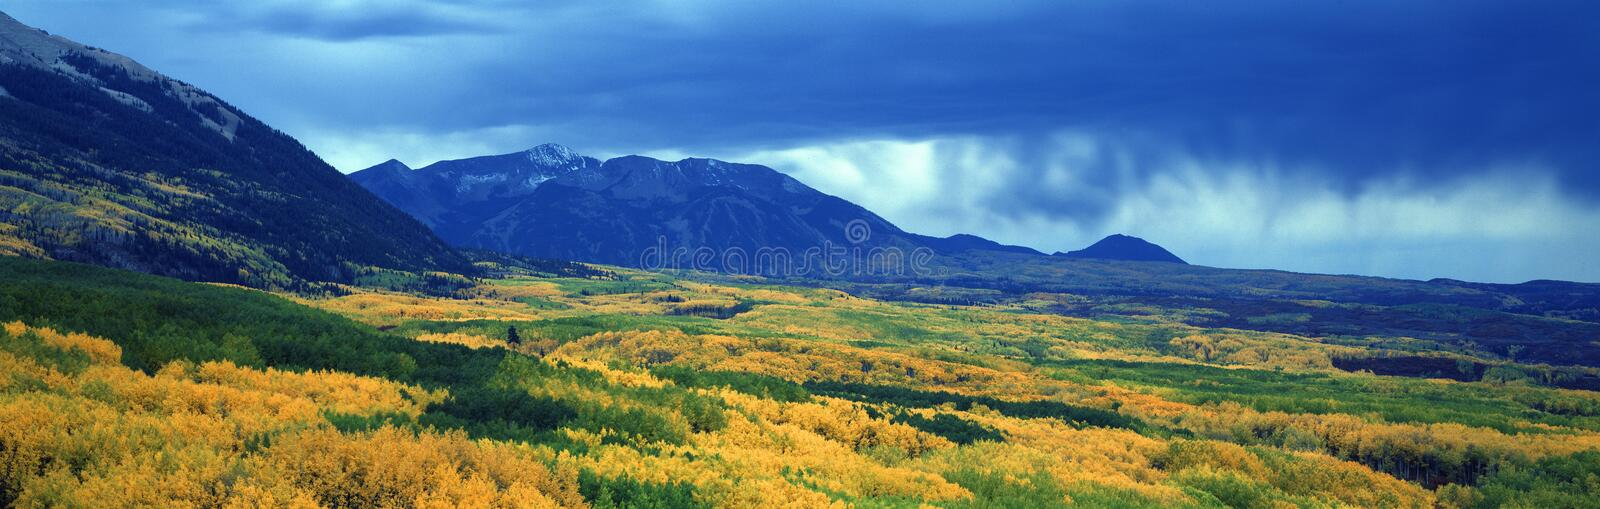 Autumn clouds at Kebler Pass, Gunnison National Forest, Colorado stock photo